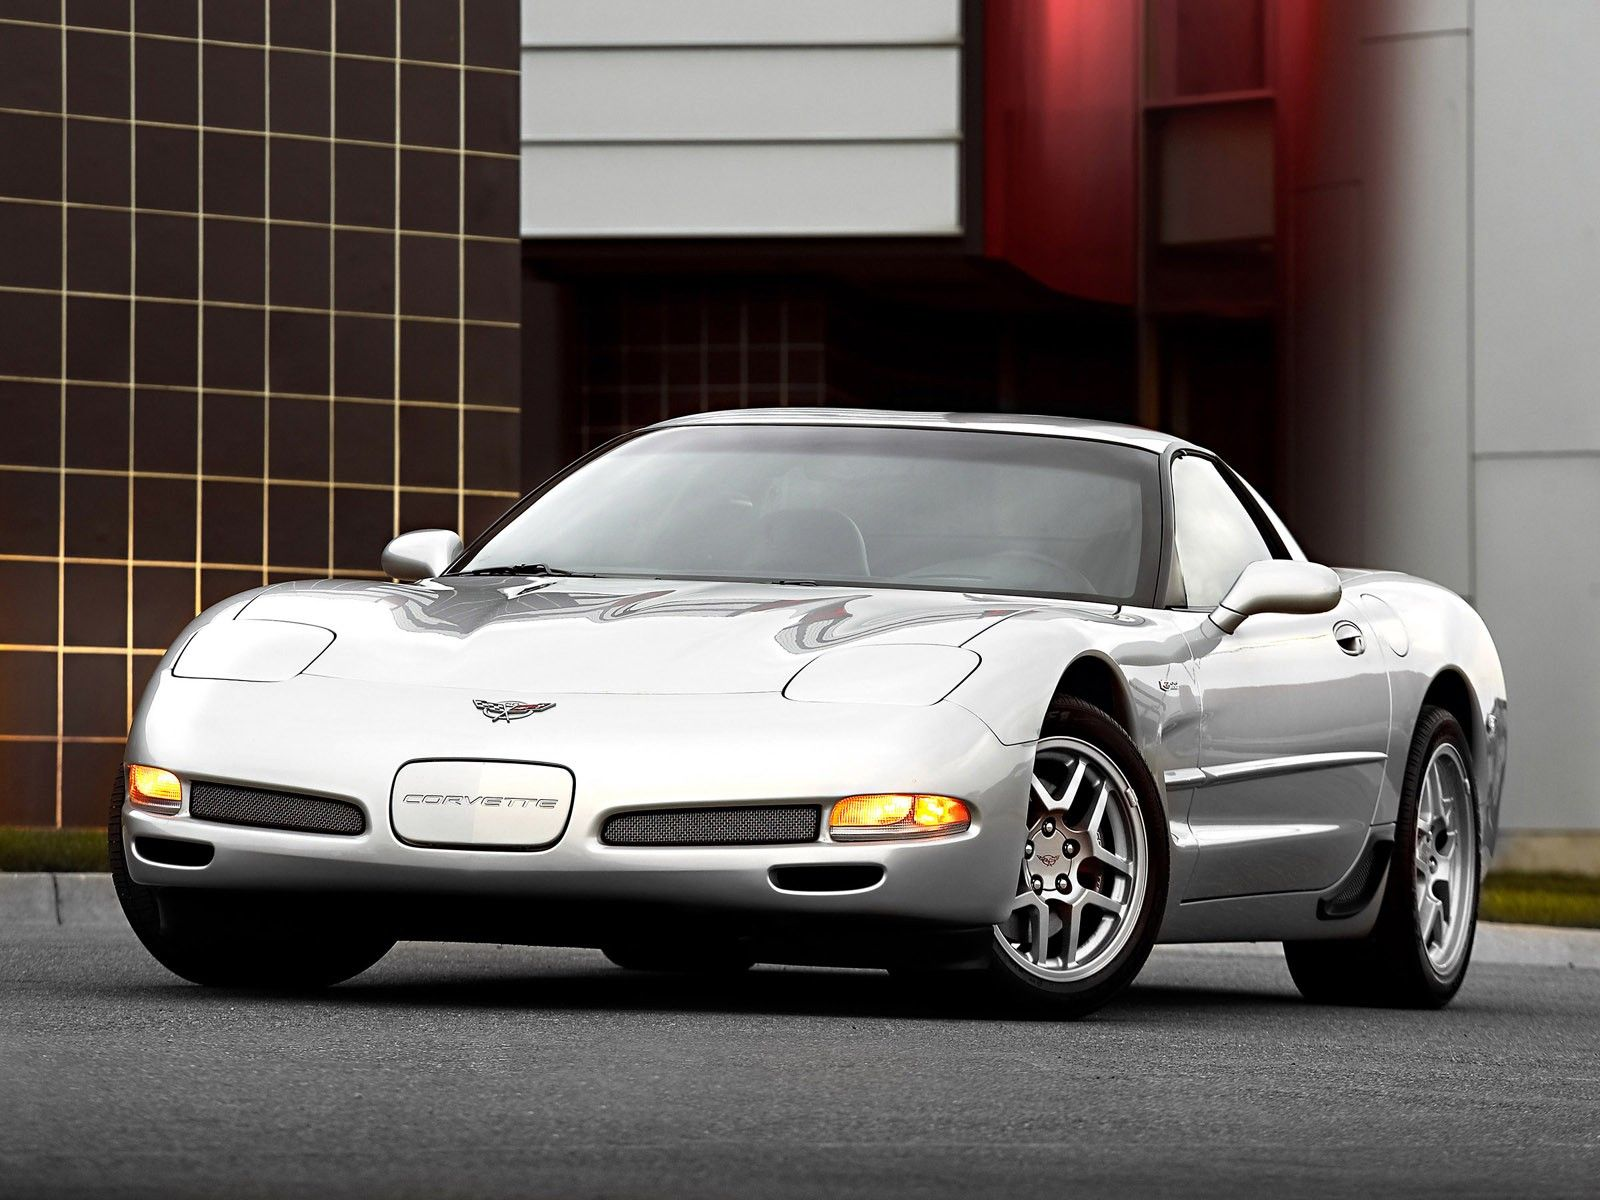 Chevy corvette c5 1997 learned how to drive stick shift with this car